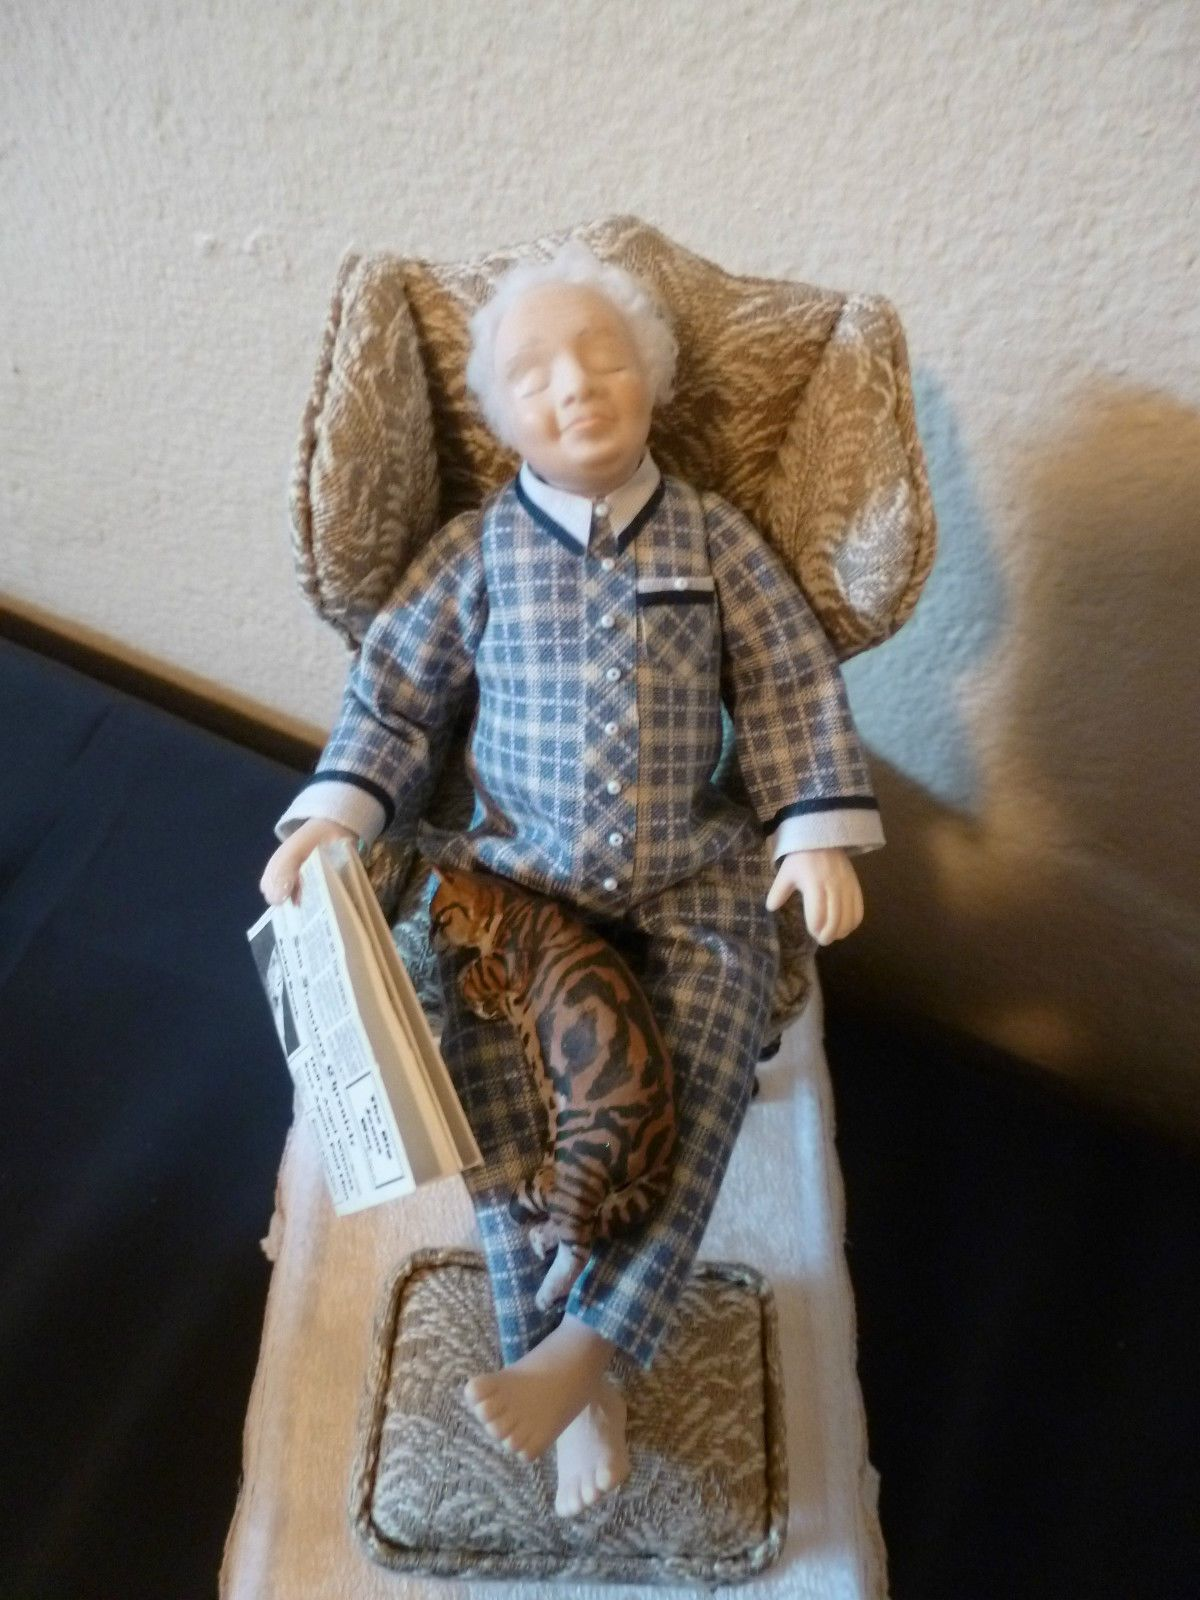 MINIATURE SLEEPING MAN DOLL RECLINING IN A CHAIR WITH CAT ON LAP AND FEET UP 1:12 SCALE